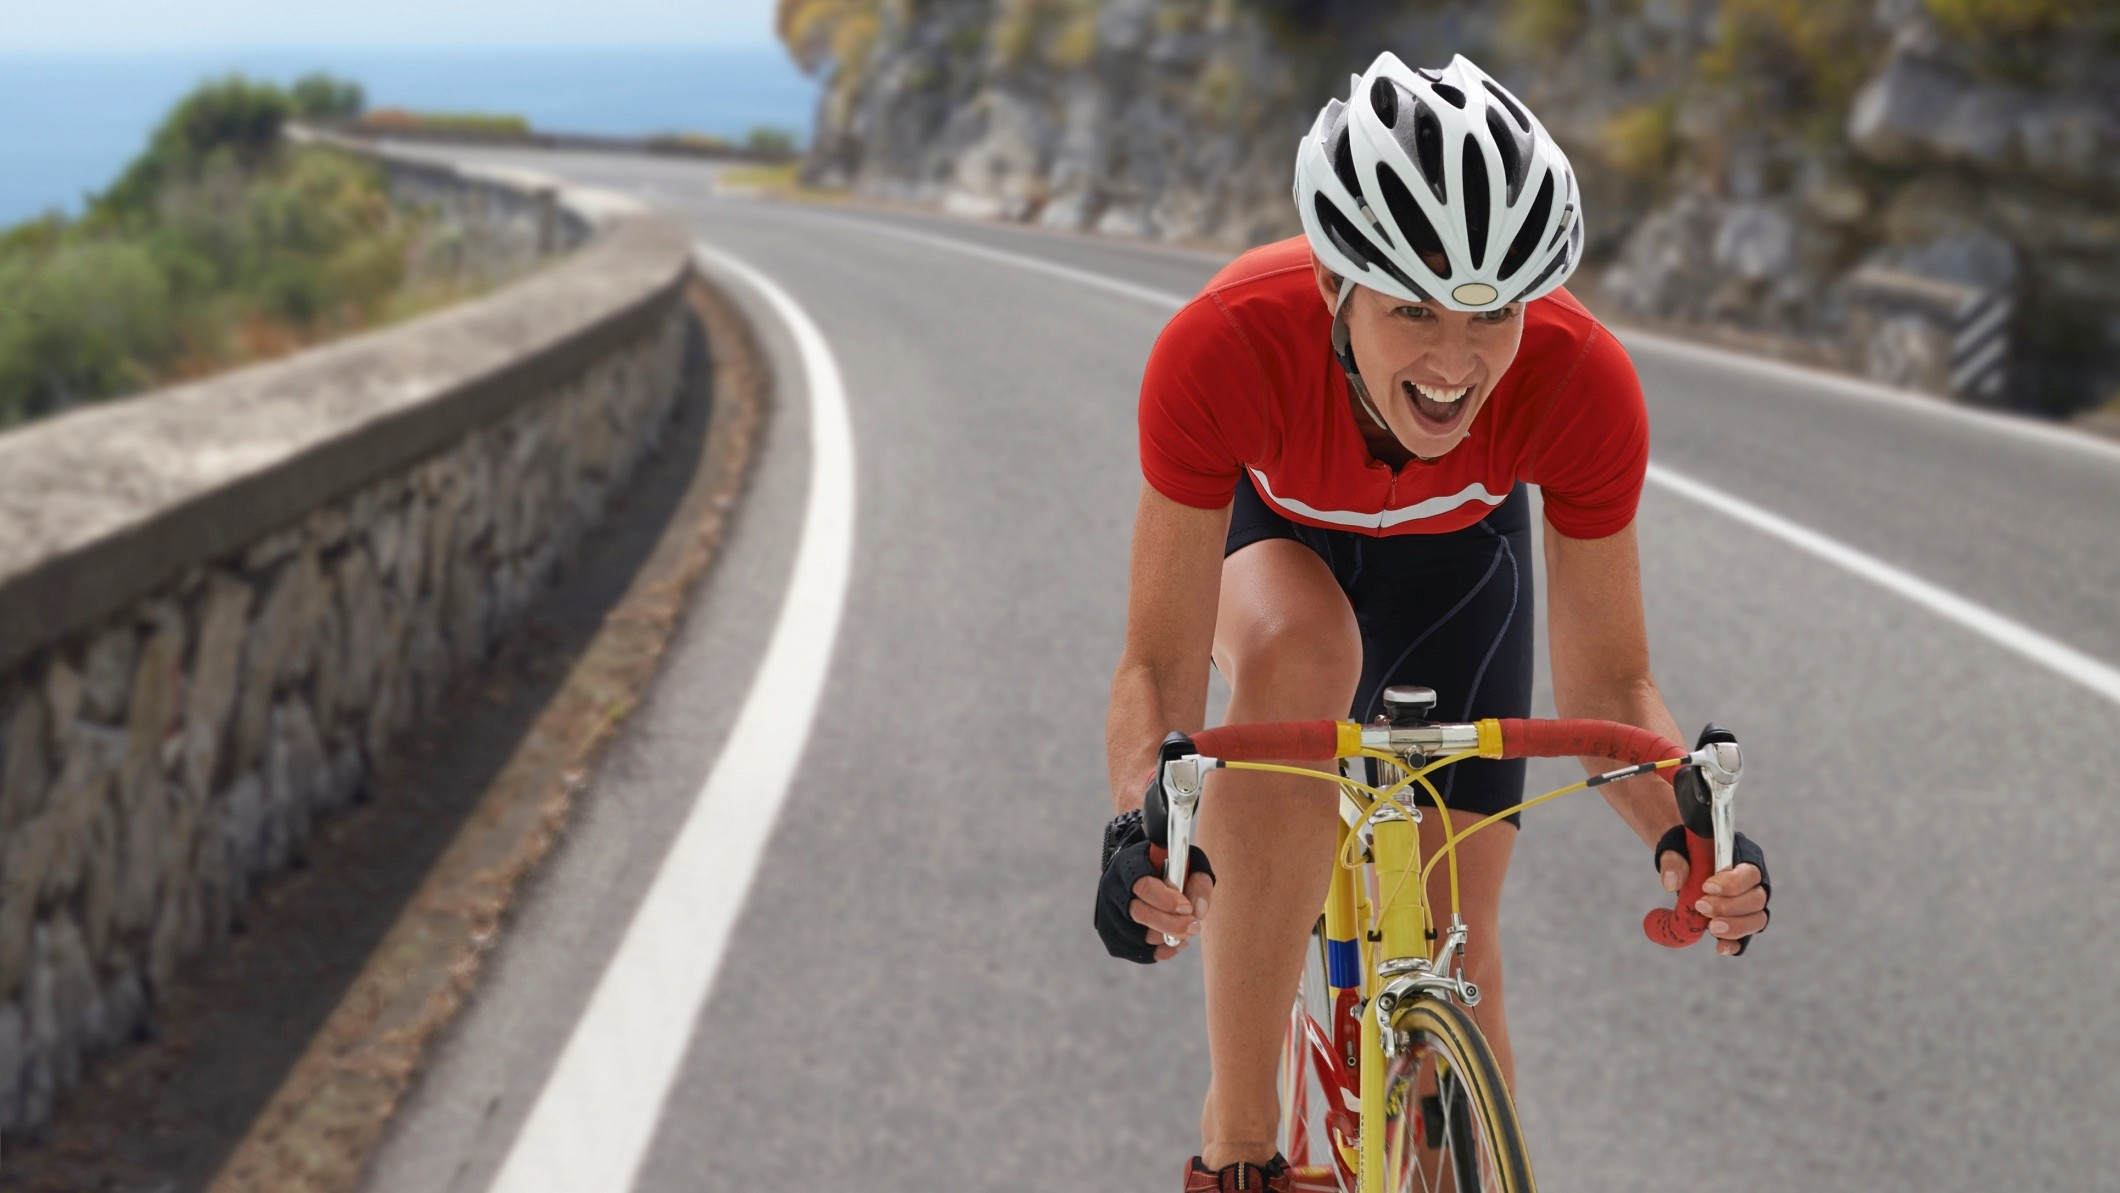 In case you were unsure — cyclists have a legal right to be on the road!